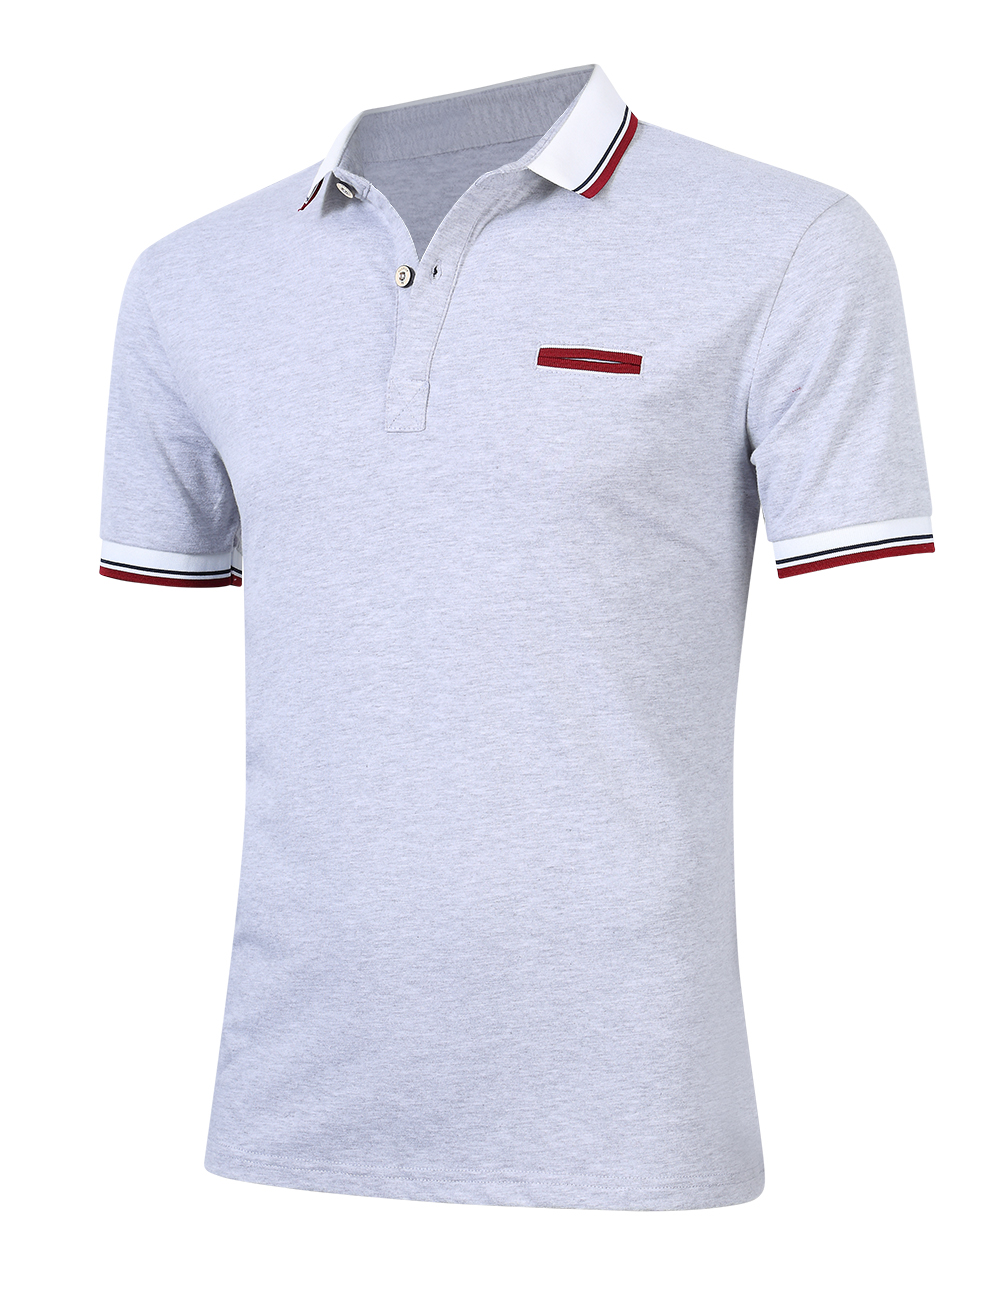 [US Direct] Young Horse Men Cotton Contrast Lapel Short Sleeve Slimming Polo Shirt Grey_4XL